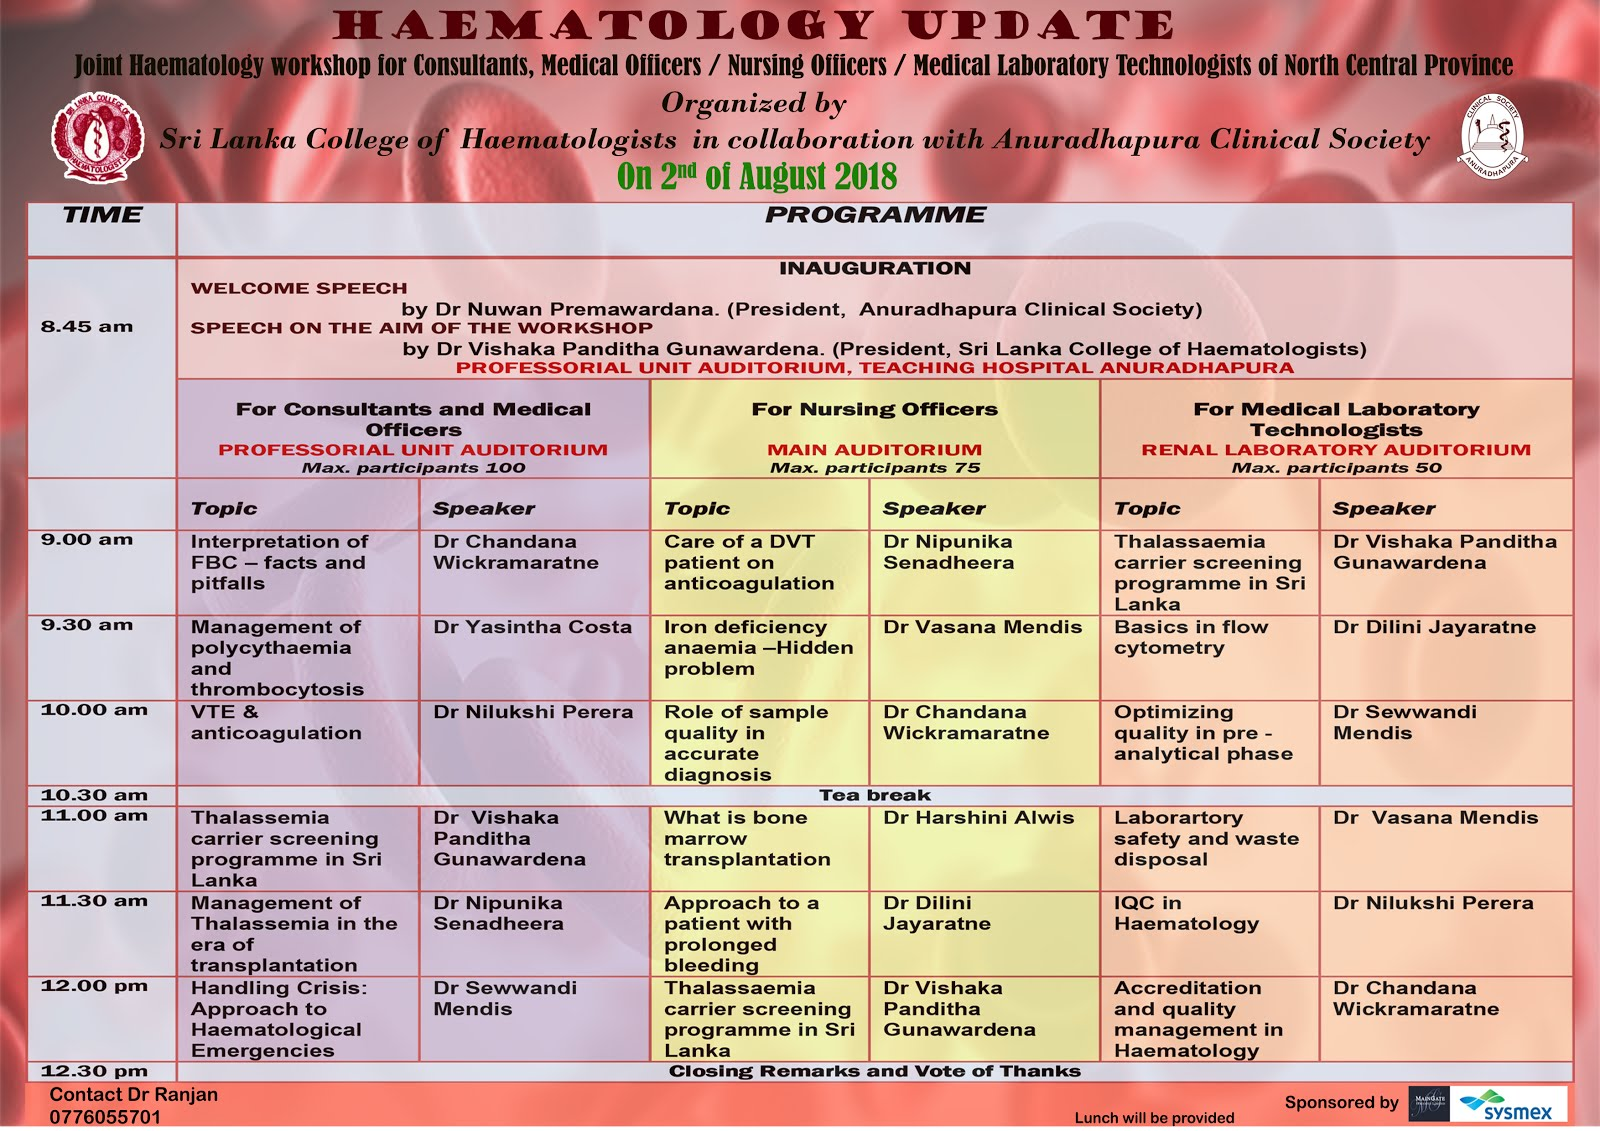 Haematology Update - (Joint Haematology Workshop)